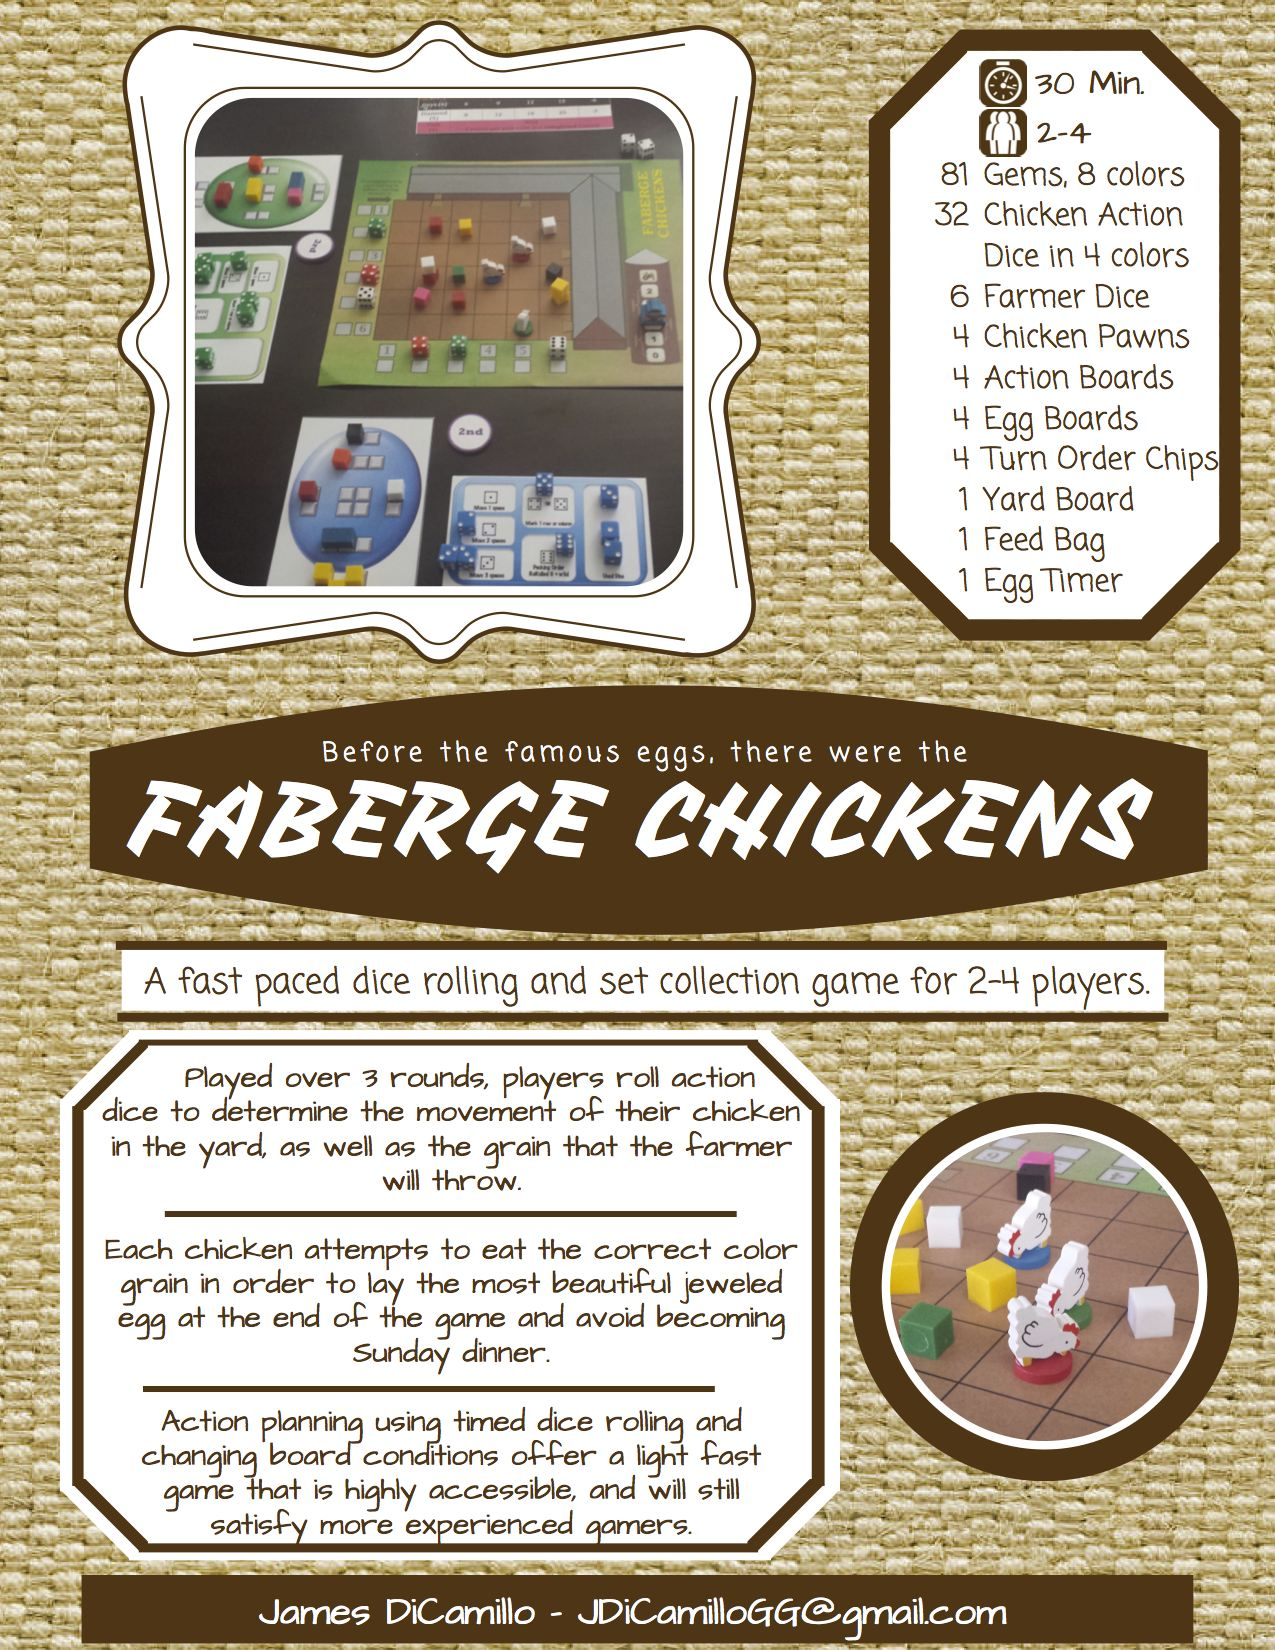 Faberge chickens (7)